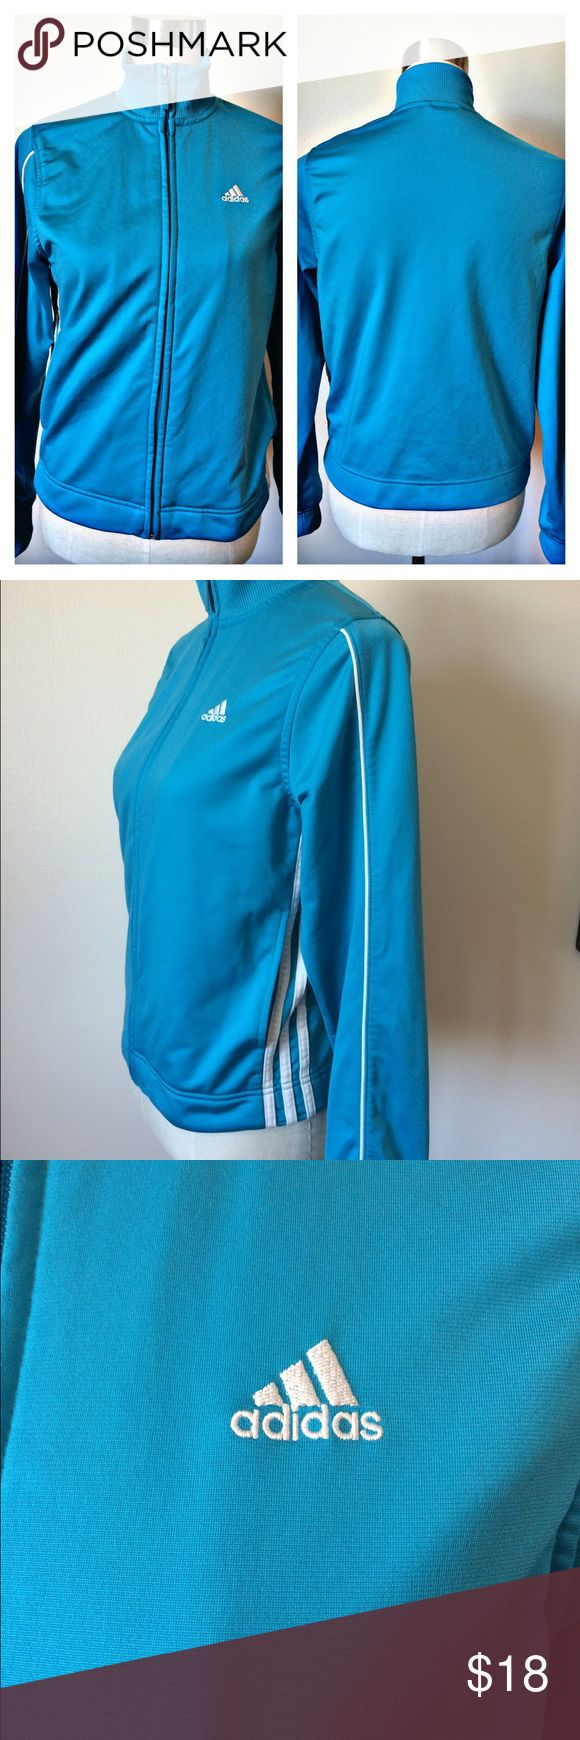 Adidas Bright Blue Zip Up Track Jacket Adidas Bright Blue Zip Up Track Jacket, 100% polyester, size small. Adidas Tops Sweatshirts & Hoodies